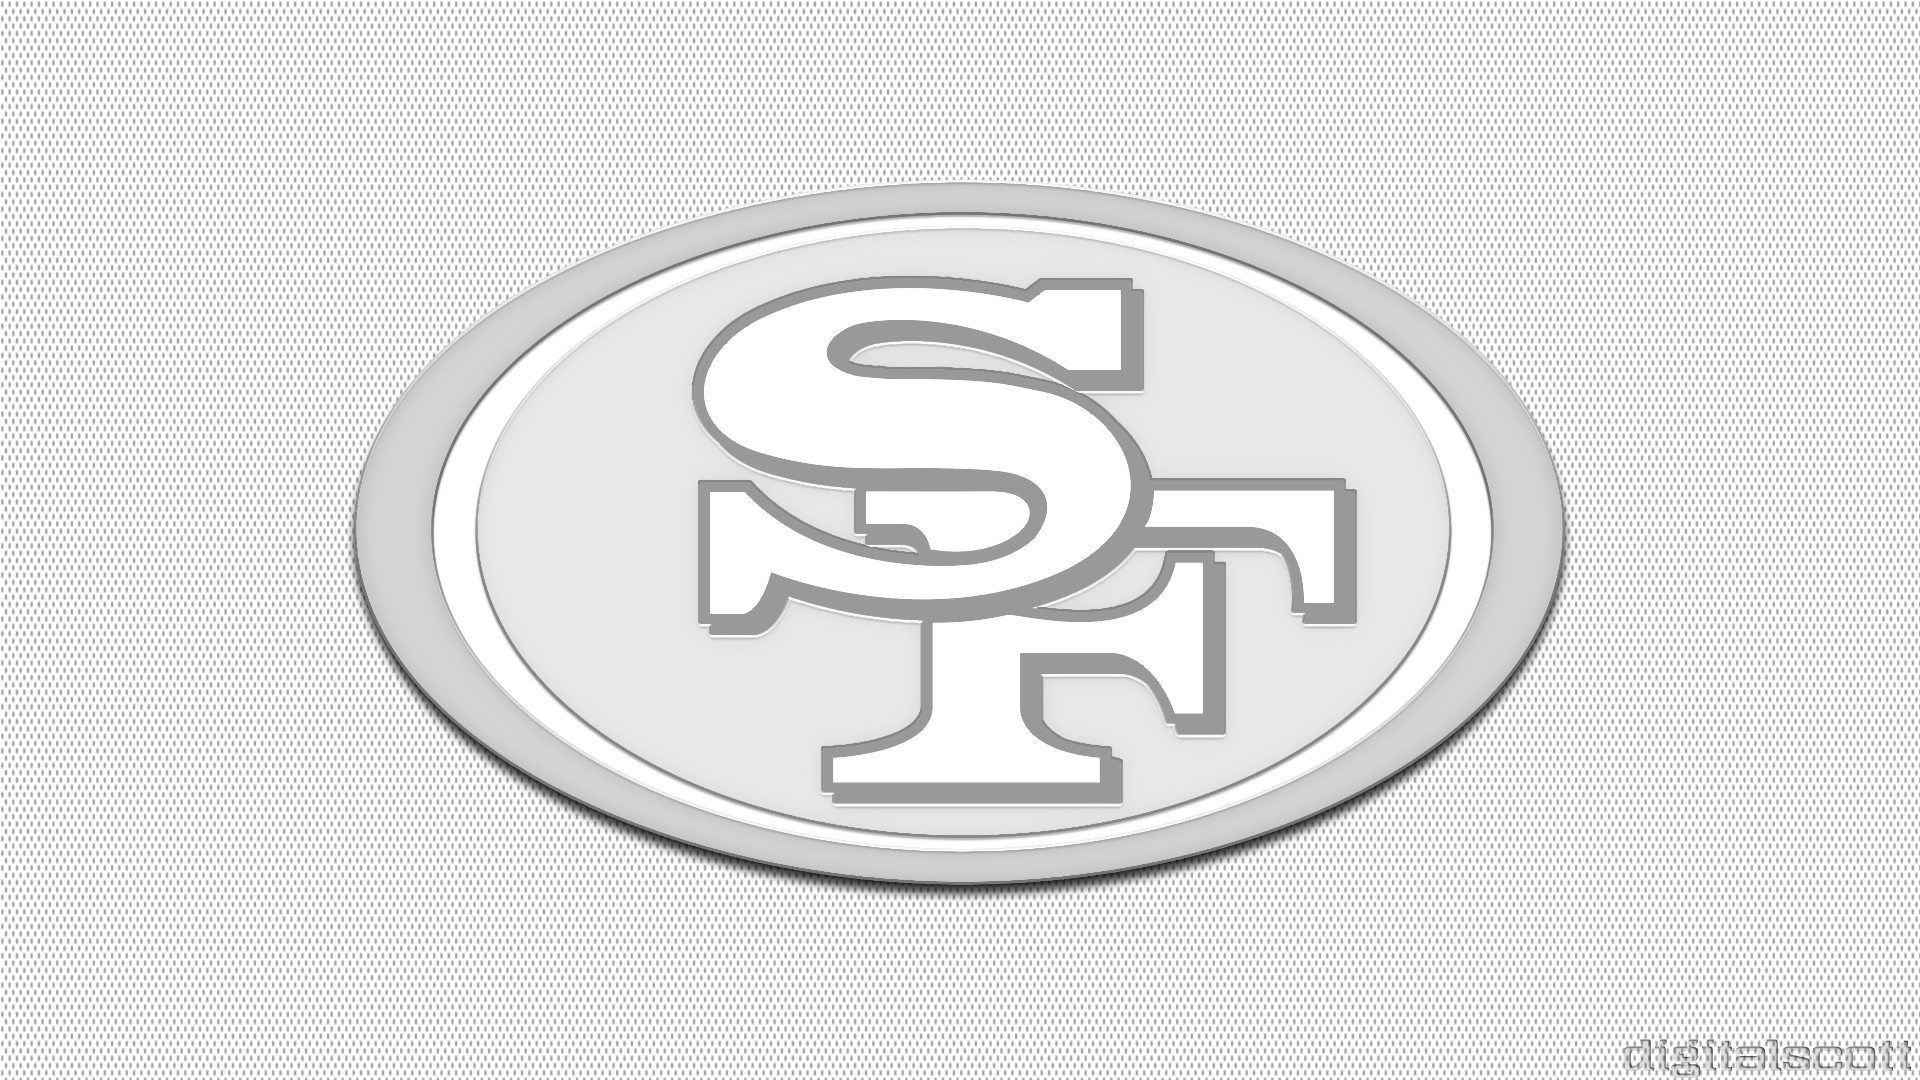 1080x1920 49ers Background Wallpaper 2018 San Francisco 49ers Wallpapers Pc iPhone android Of 49ers Background Wallpaper Free